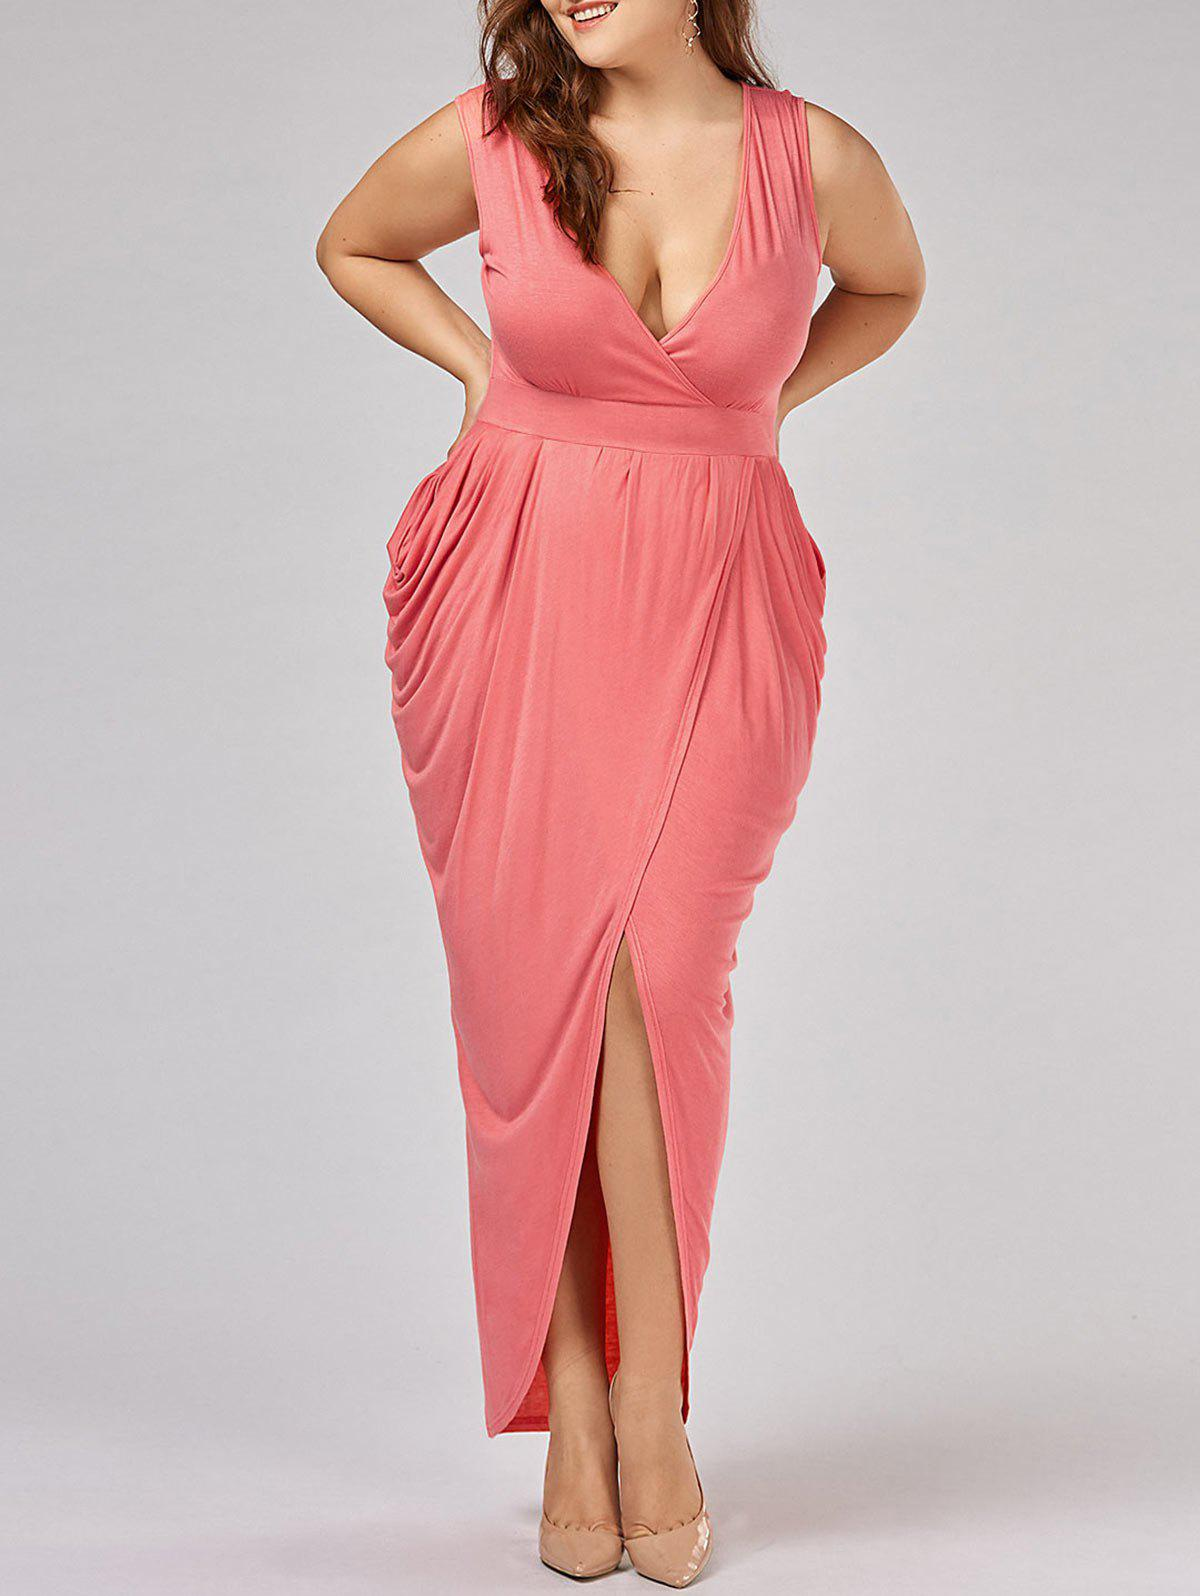 Ruched Plus Size Surplice Maxi Evening DressWOMEN<br><br>Size: XL; Color: ORANGEPINK; Style: Brief; Material: Cotton,Spandex; Silhouette: Asymmetrical; Dresses Length: Ankle-Length; Neckline: Plunging Neck; Sleeve Length: Sleeveless; Pattern Type: Solid; With Belt: No; Season: Summer; Weight: 0.3500kg; Package Contents: 1 x Dress;